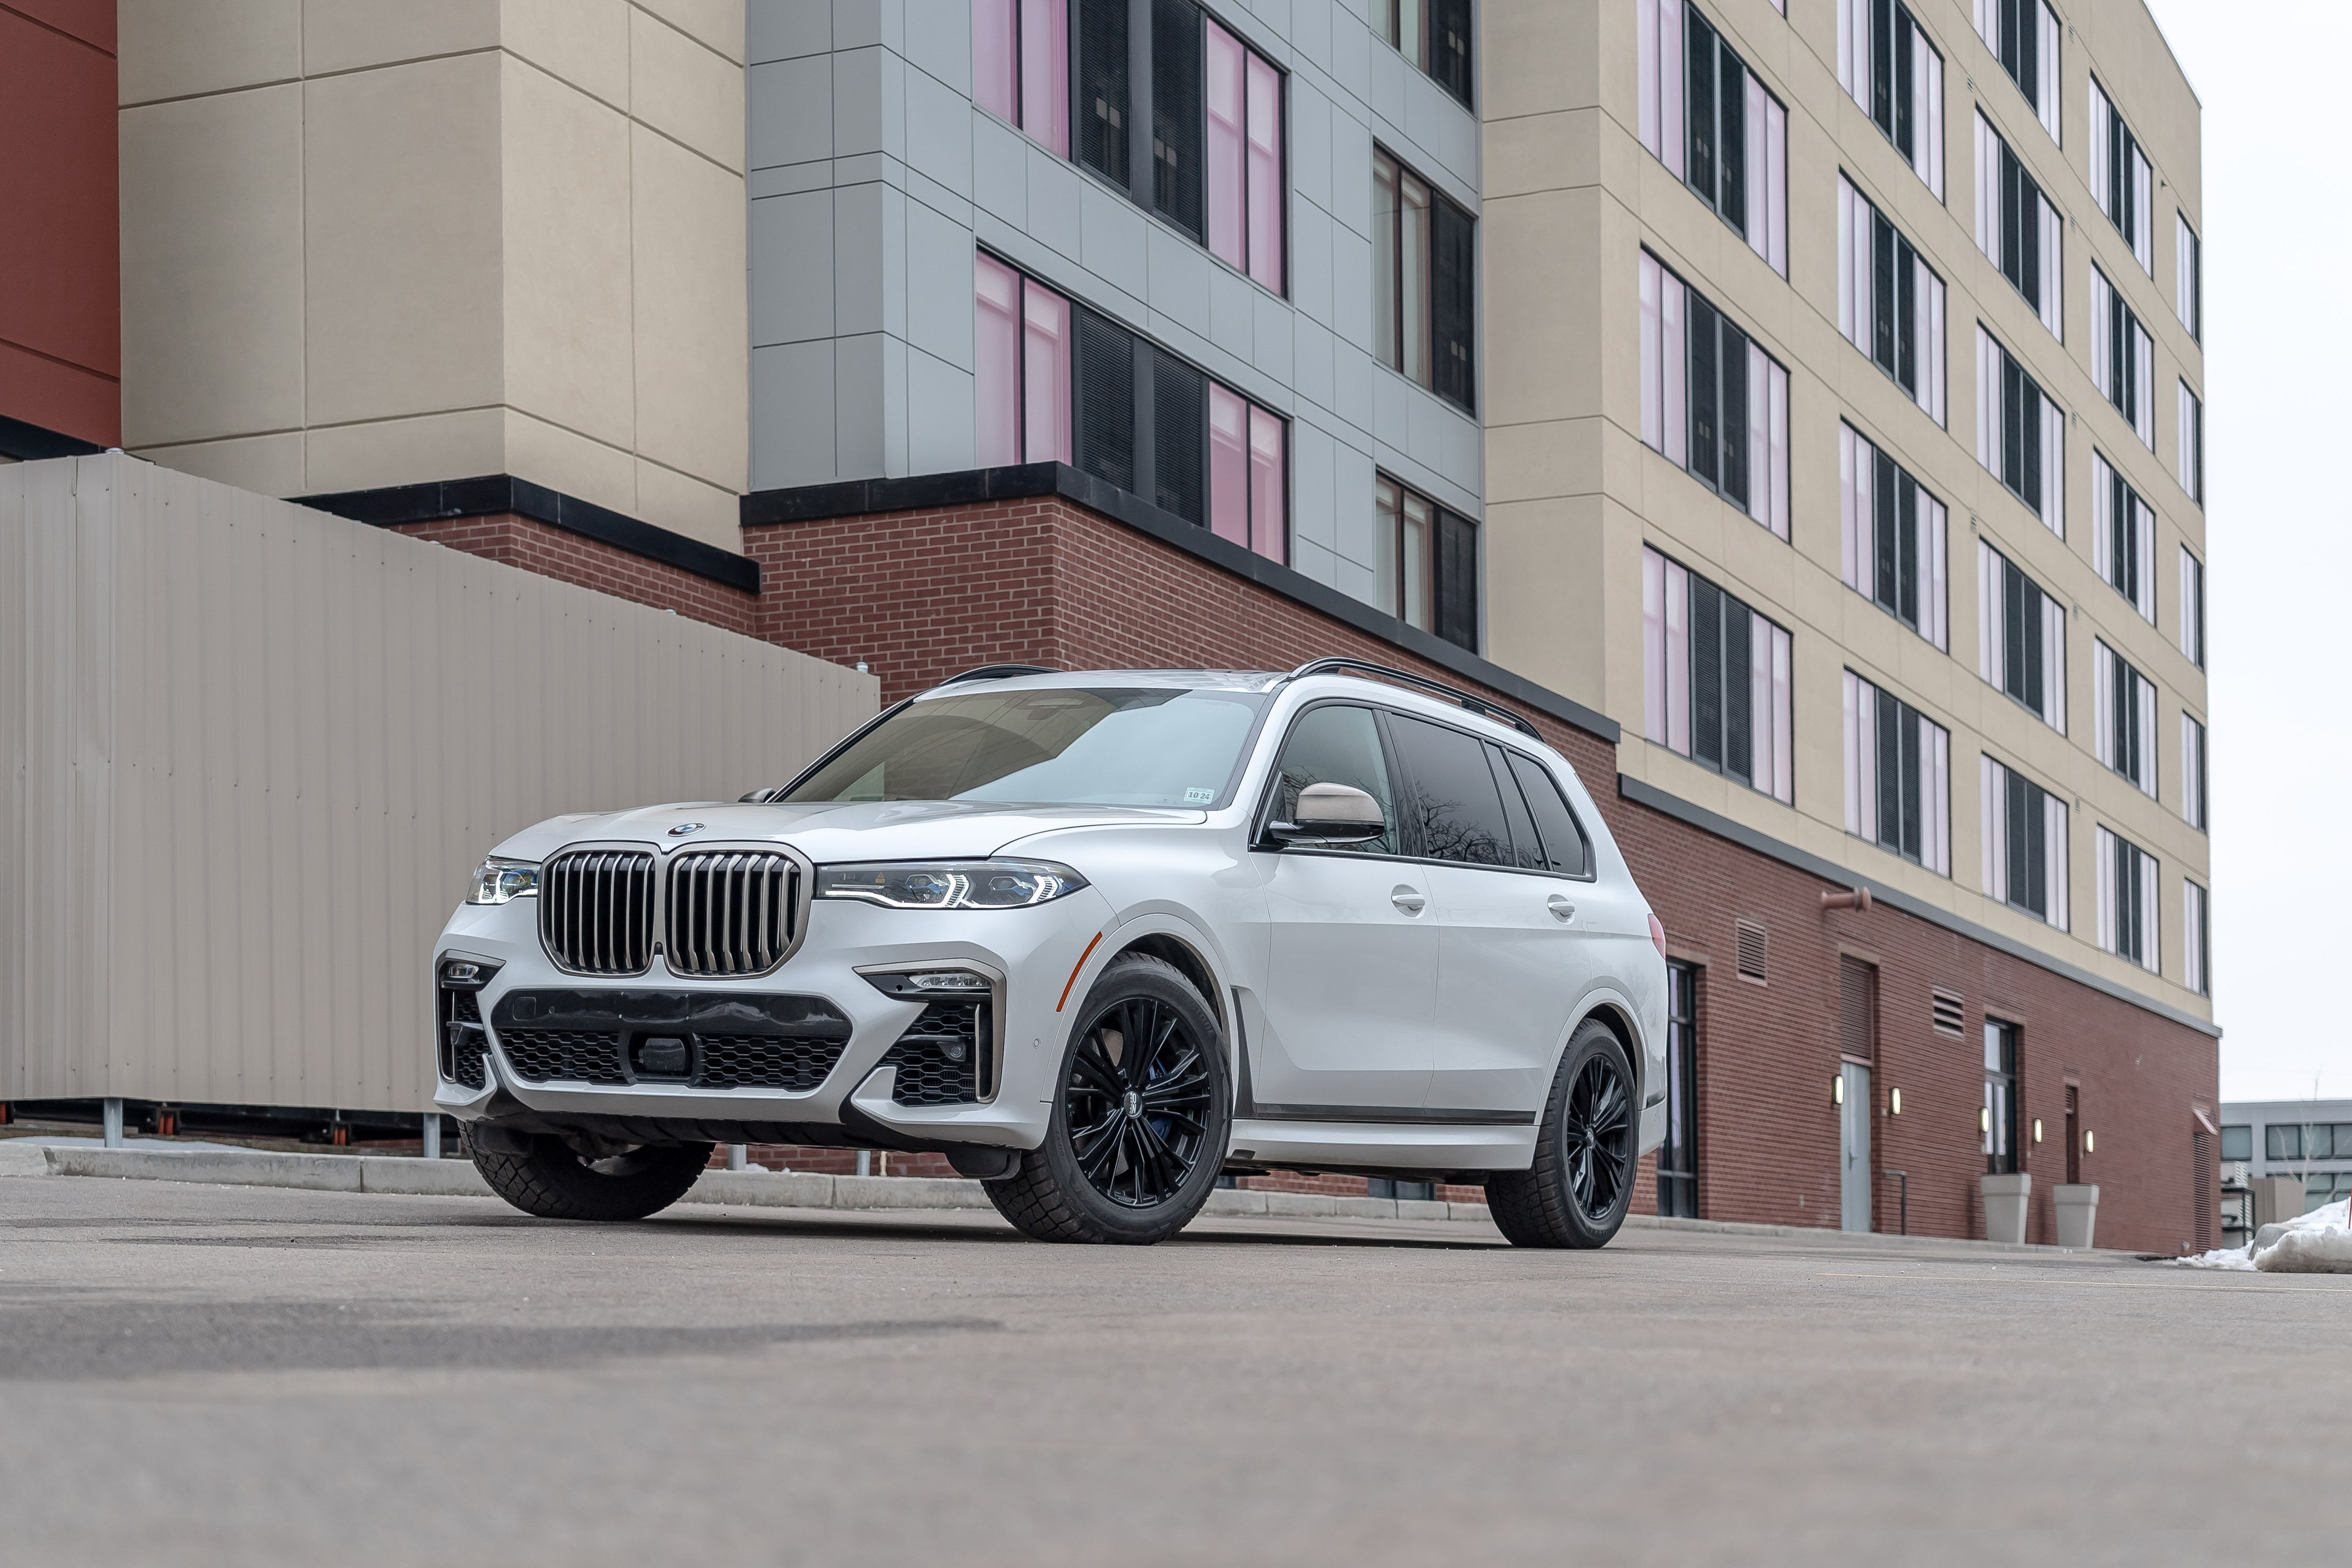 2020 BMW X7 Review, Pricing, and Specs